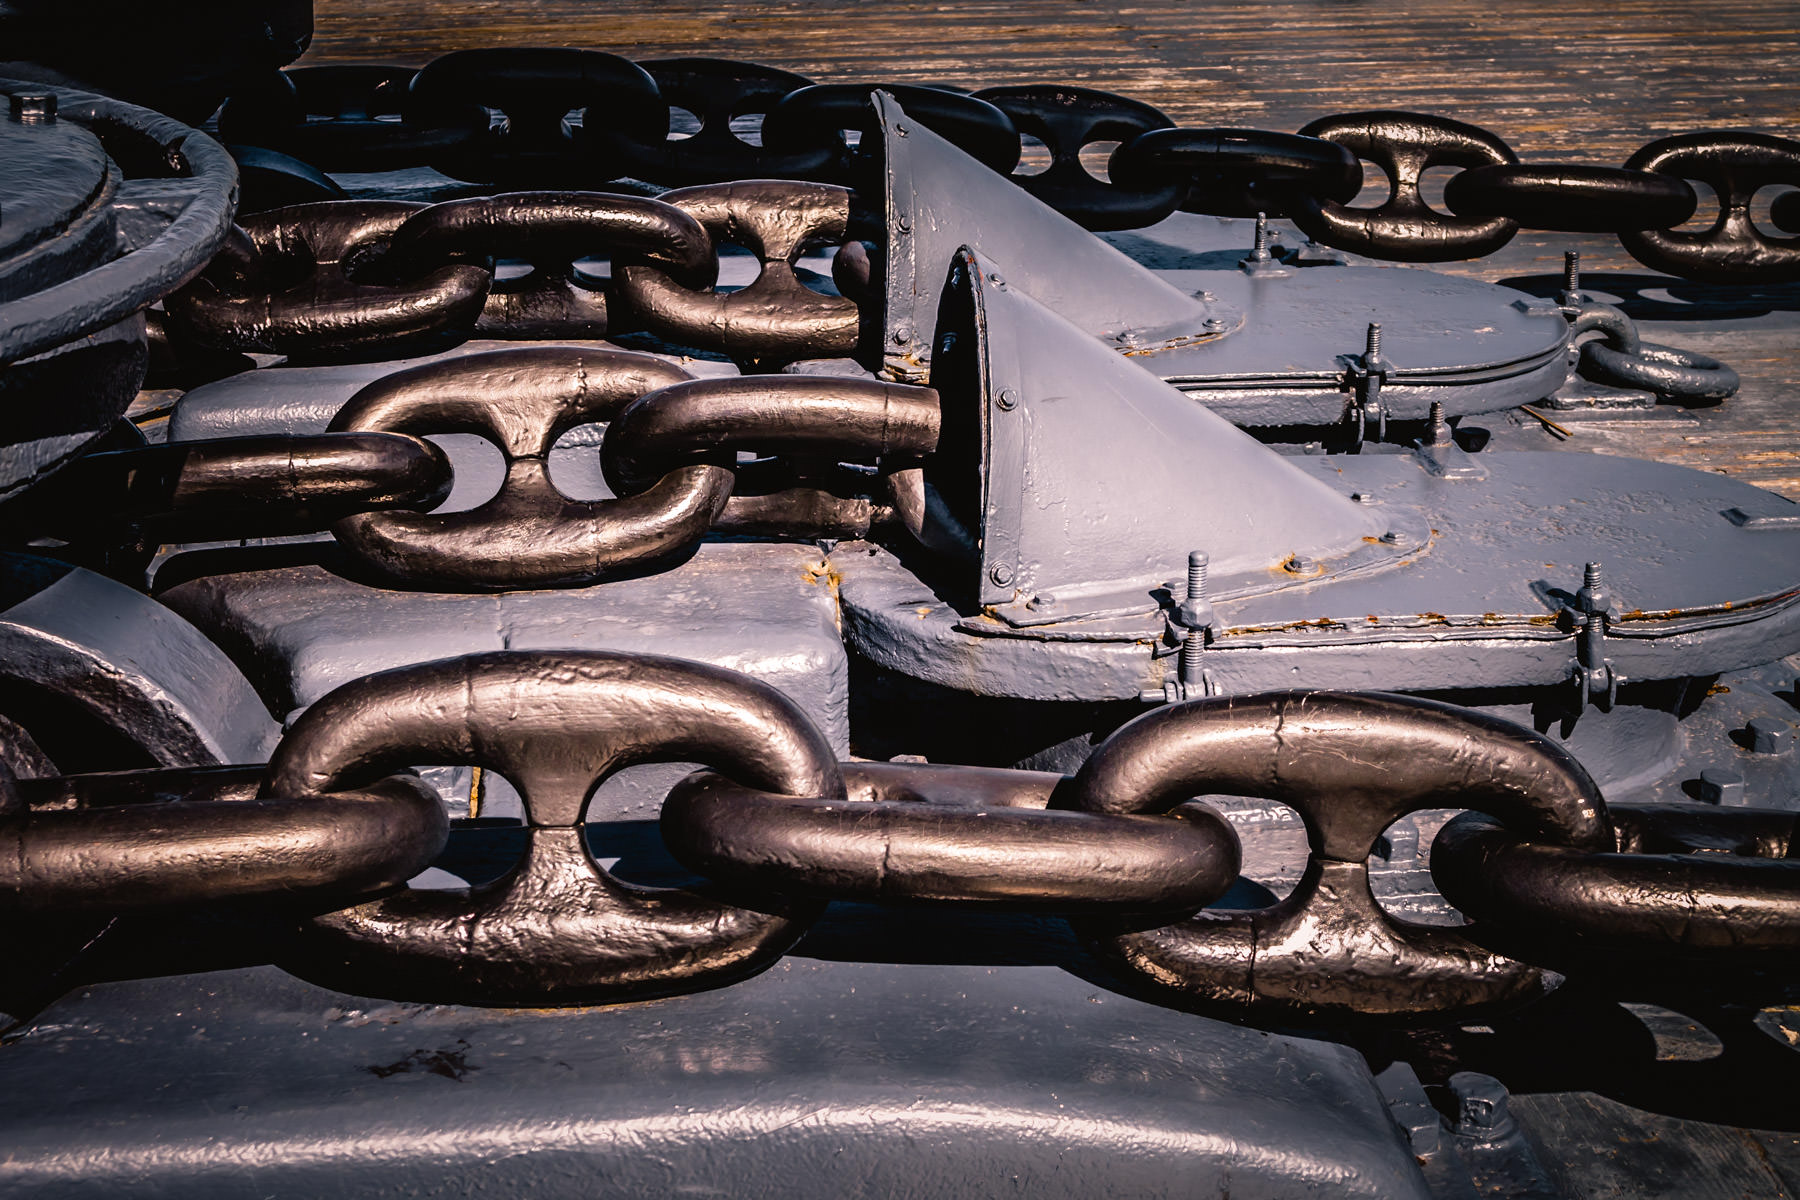 Anchor chains on the battleship USS Texas, now a museum ship near Houston.